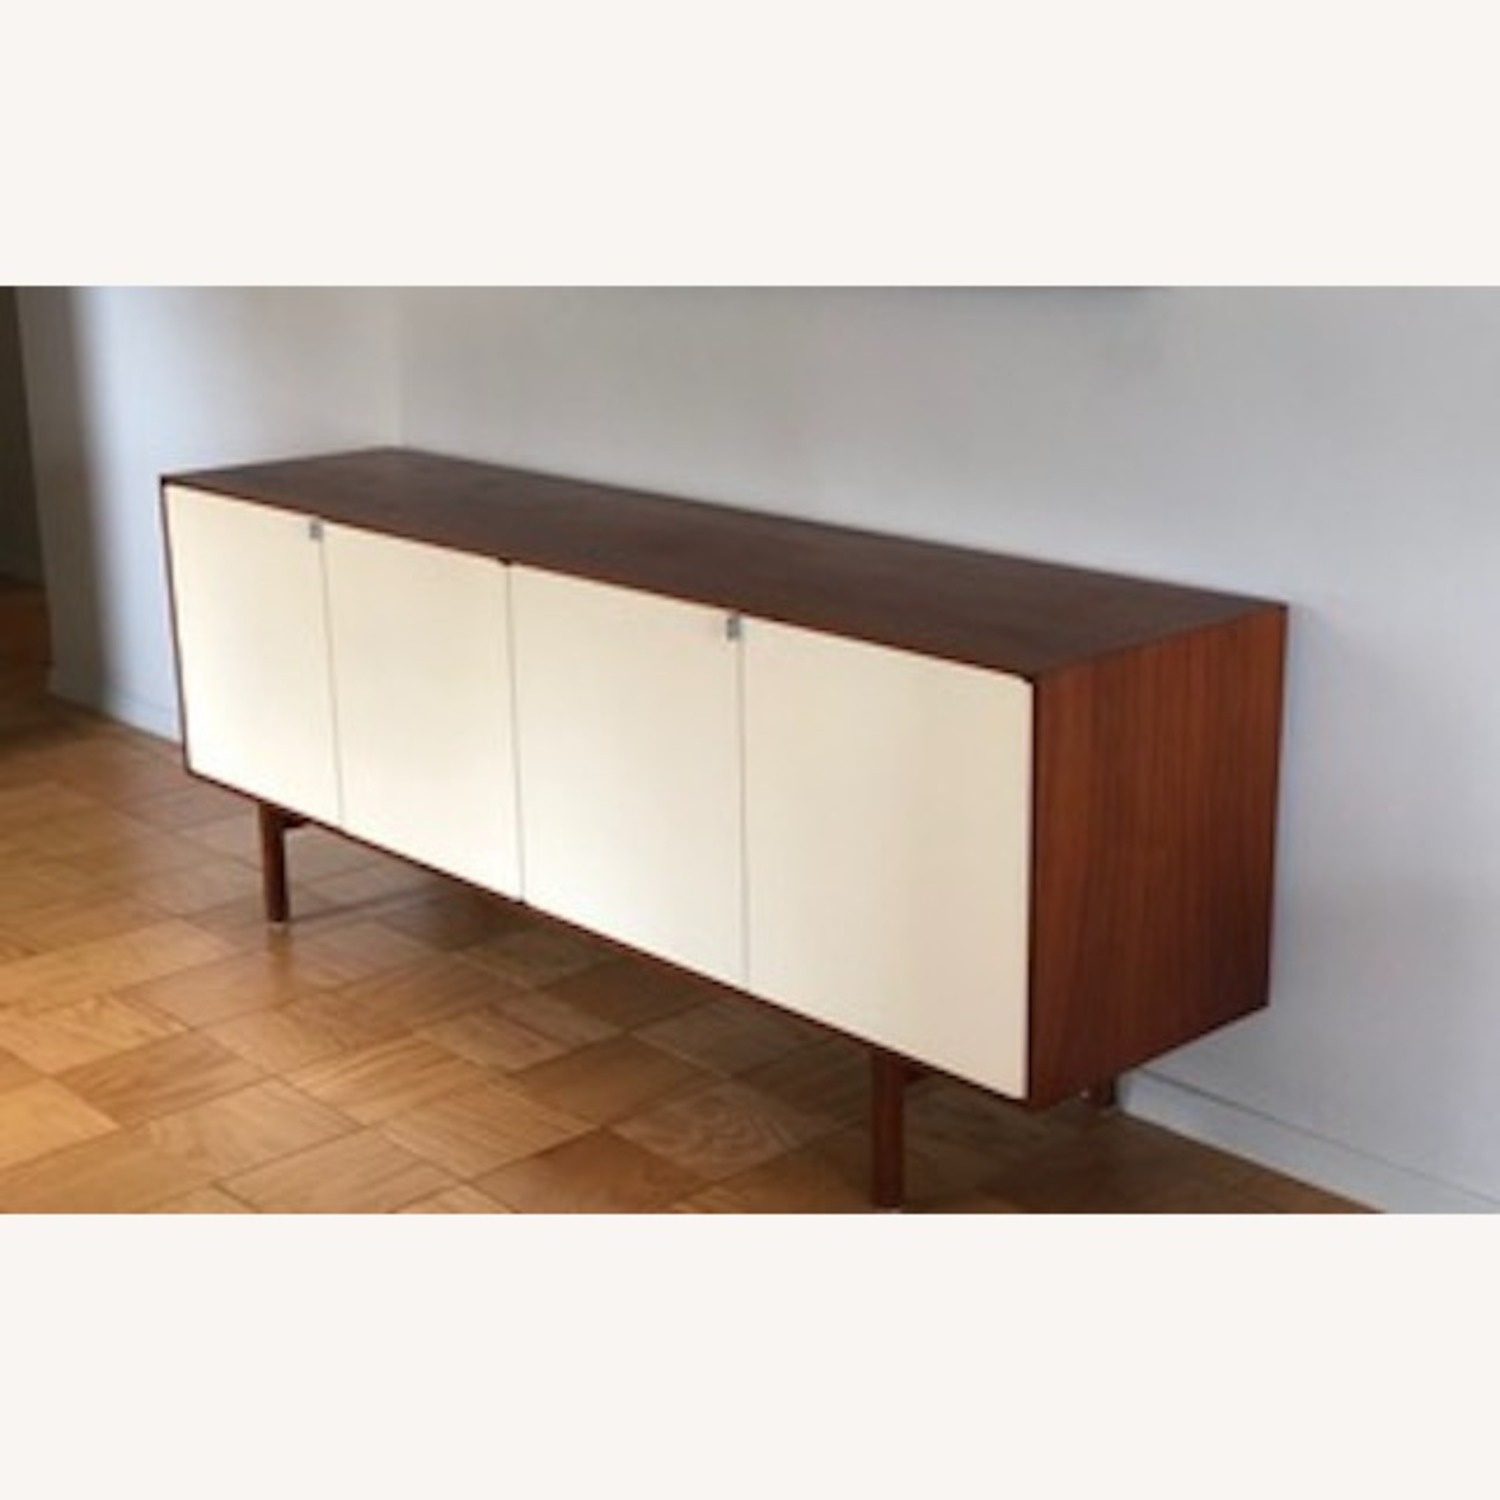 Vintage Florence Knoll Mid-Century Credenza - image-4